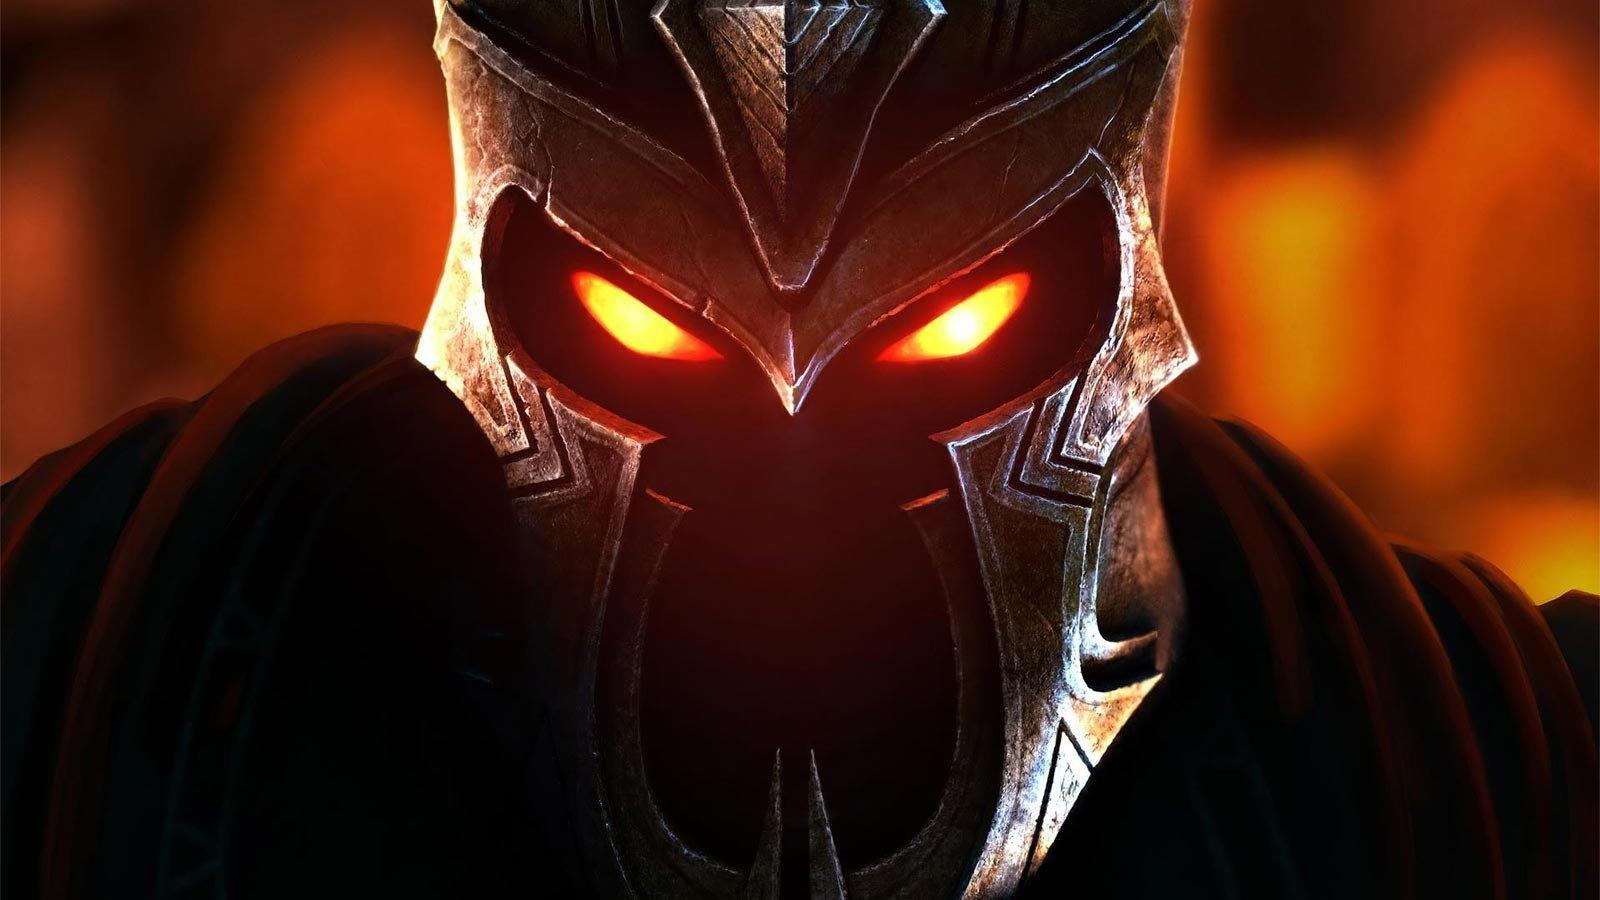 28 Best Free Fortnite Black Knight Wallpapers - WallpaperAccess